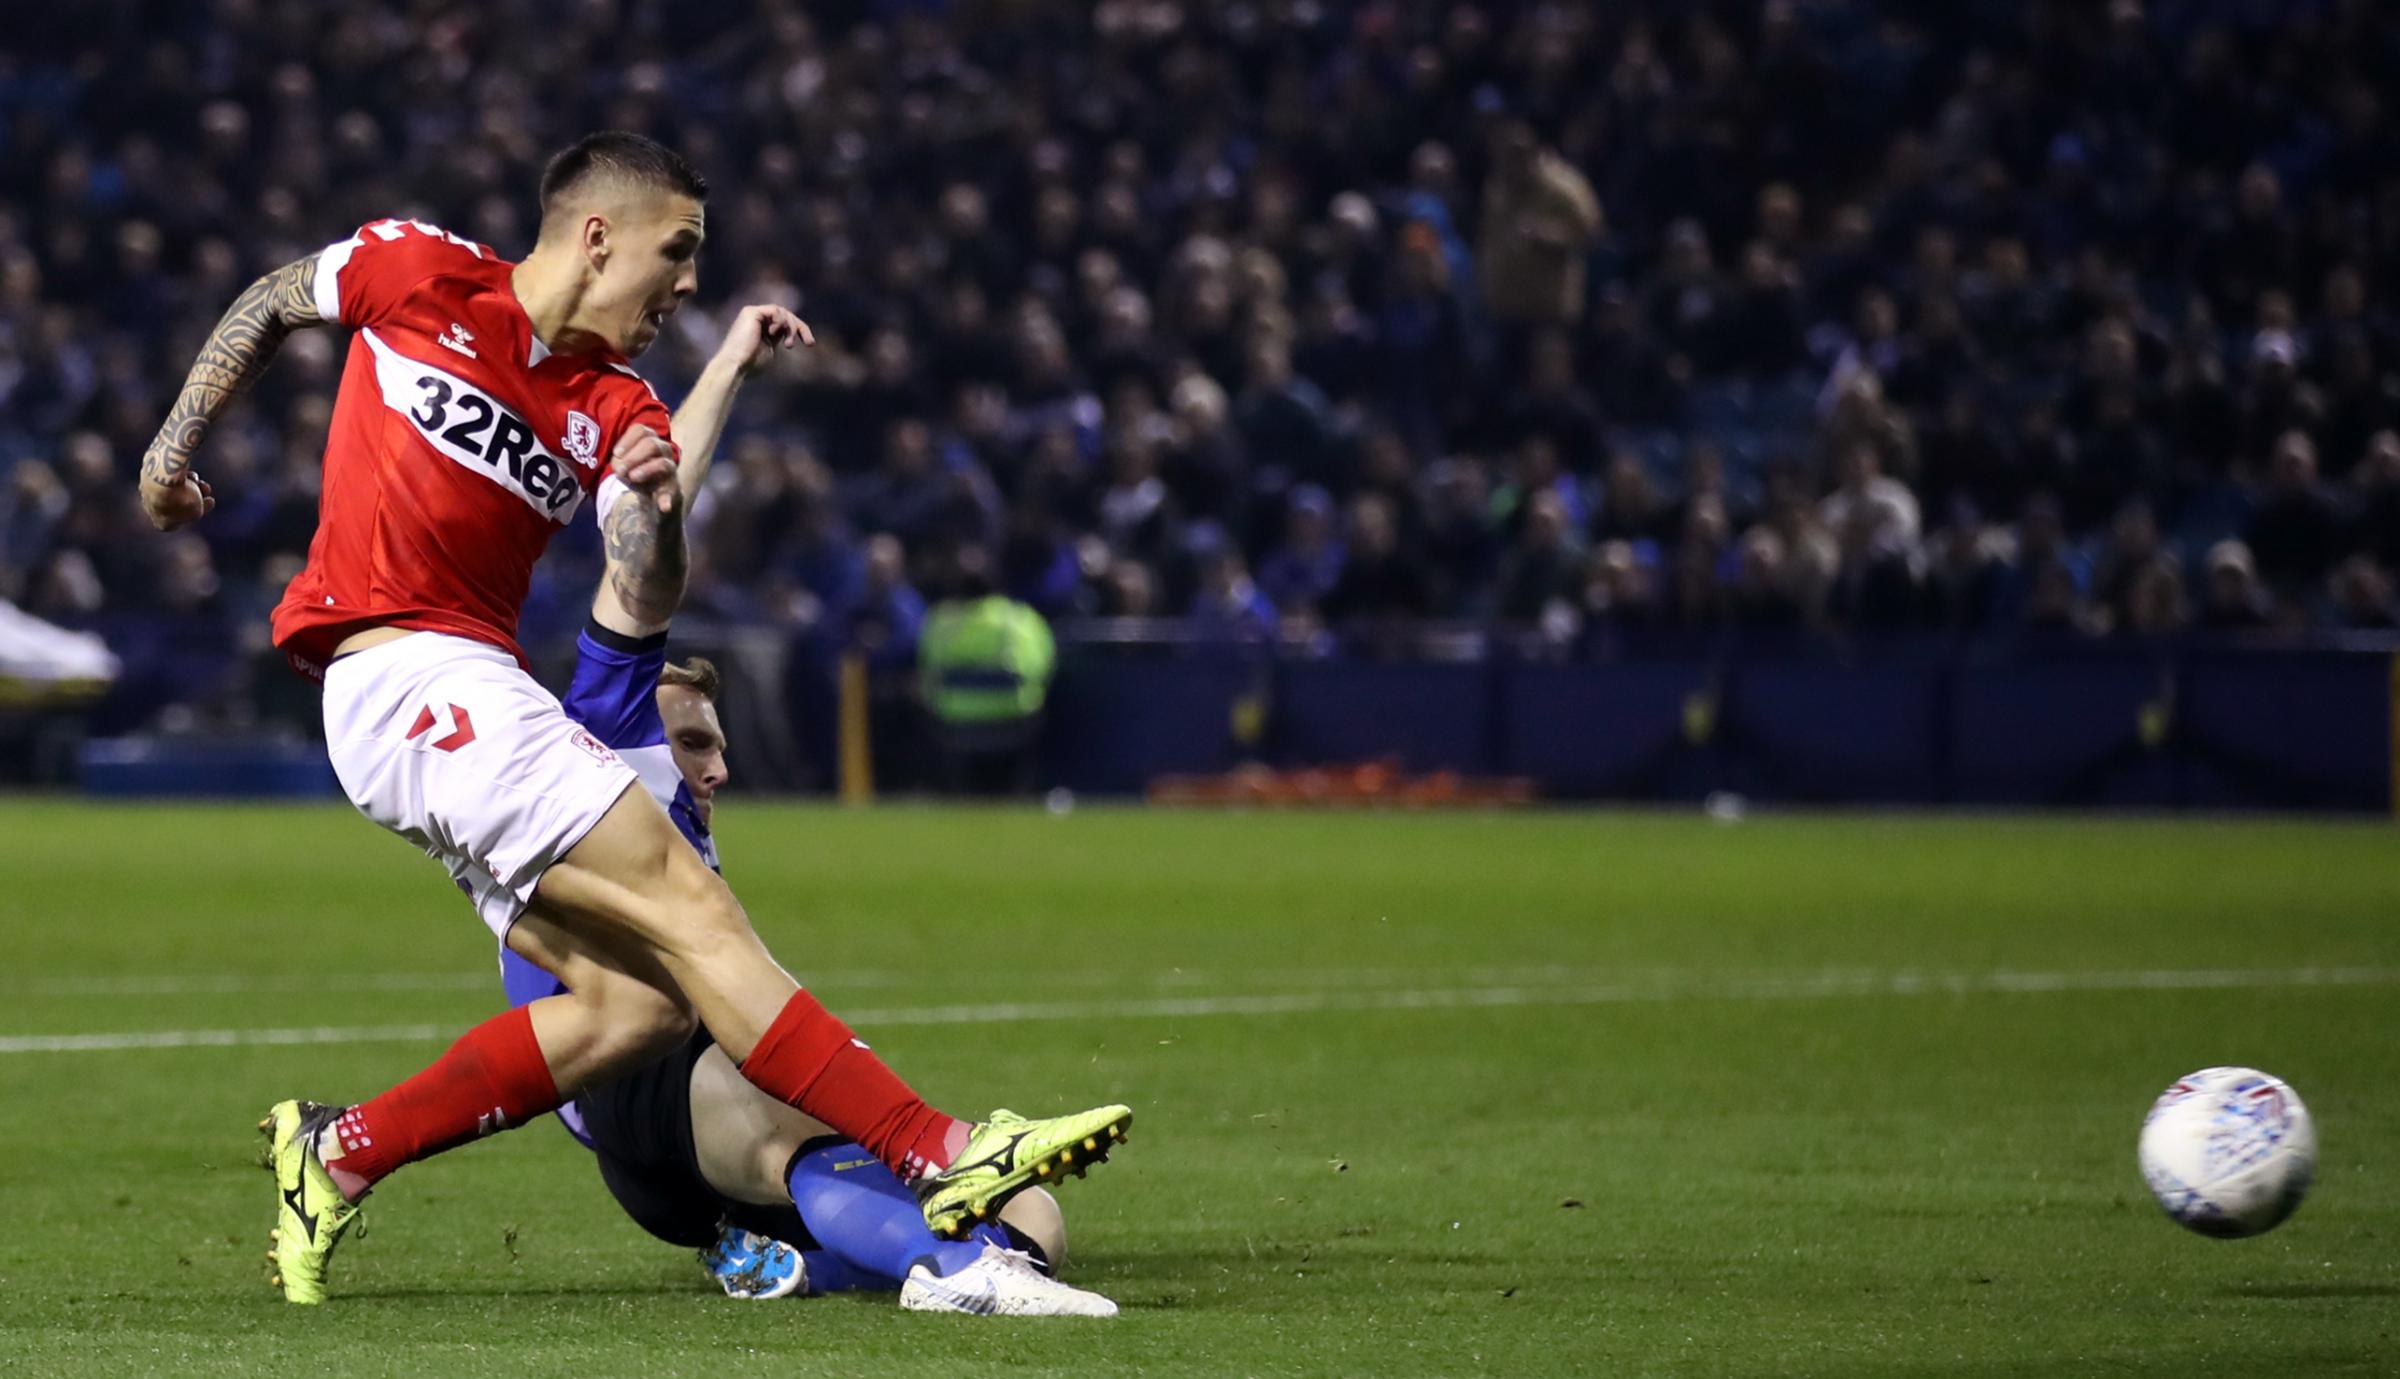 Middlesbrough's Muhamed Besic scores his side's first goal of the game during the Sky Bet Championship match at Hillsborough, Sheffield. PRESS ASSOCIATION Photo. Picture date: Friday October 19, 2018. See PA story SOCCER Sheff Wed. Photo credit sh